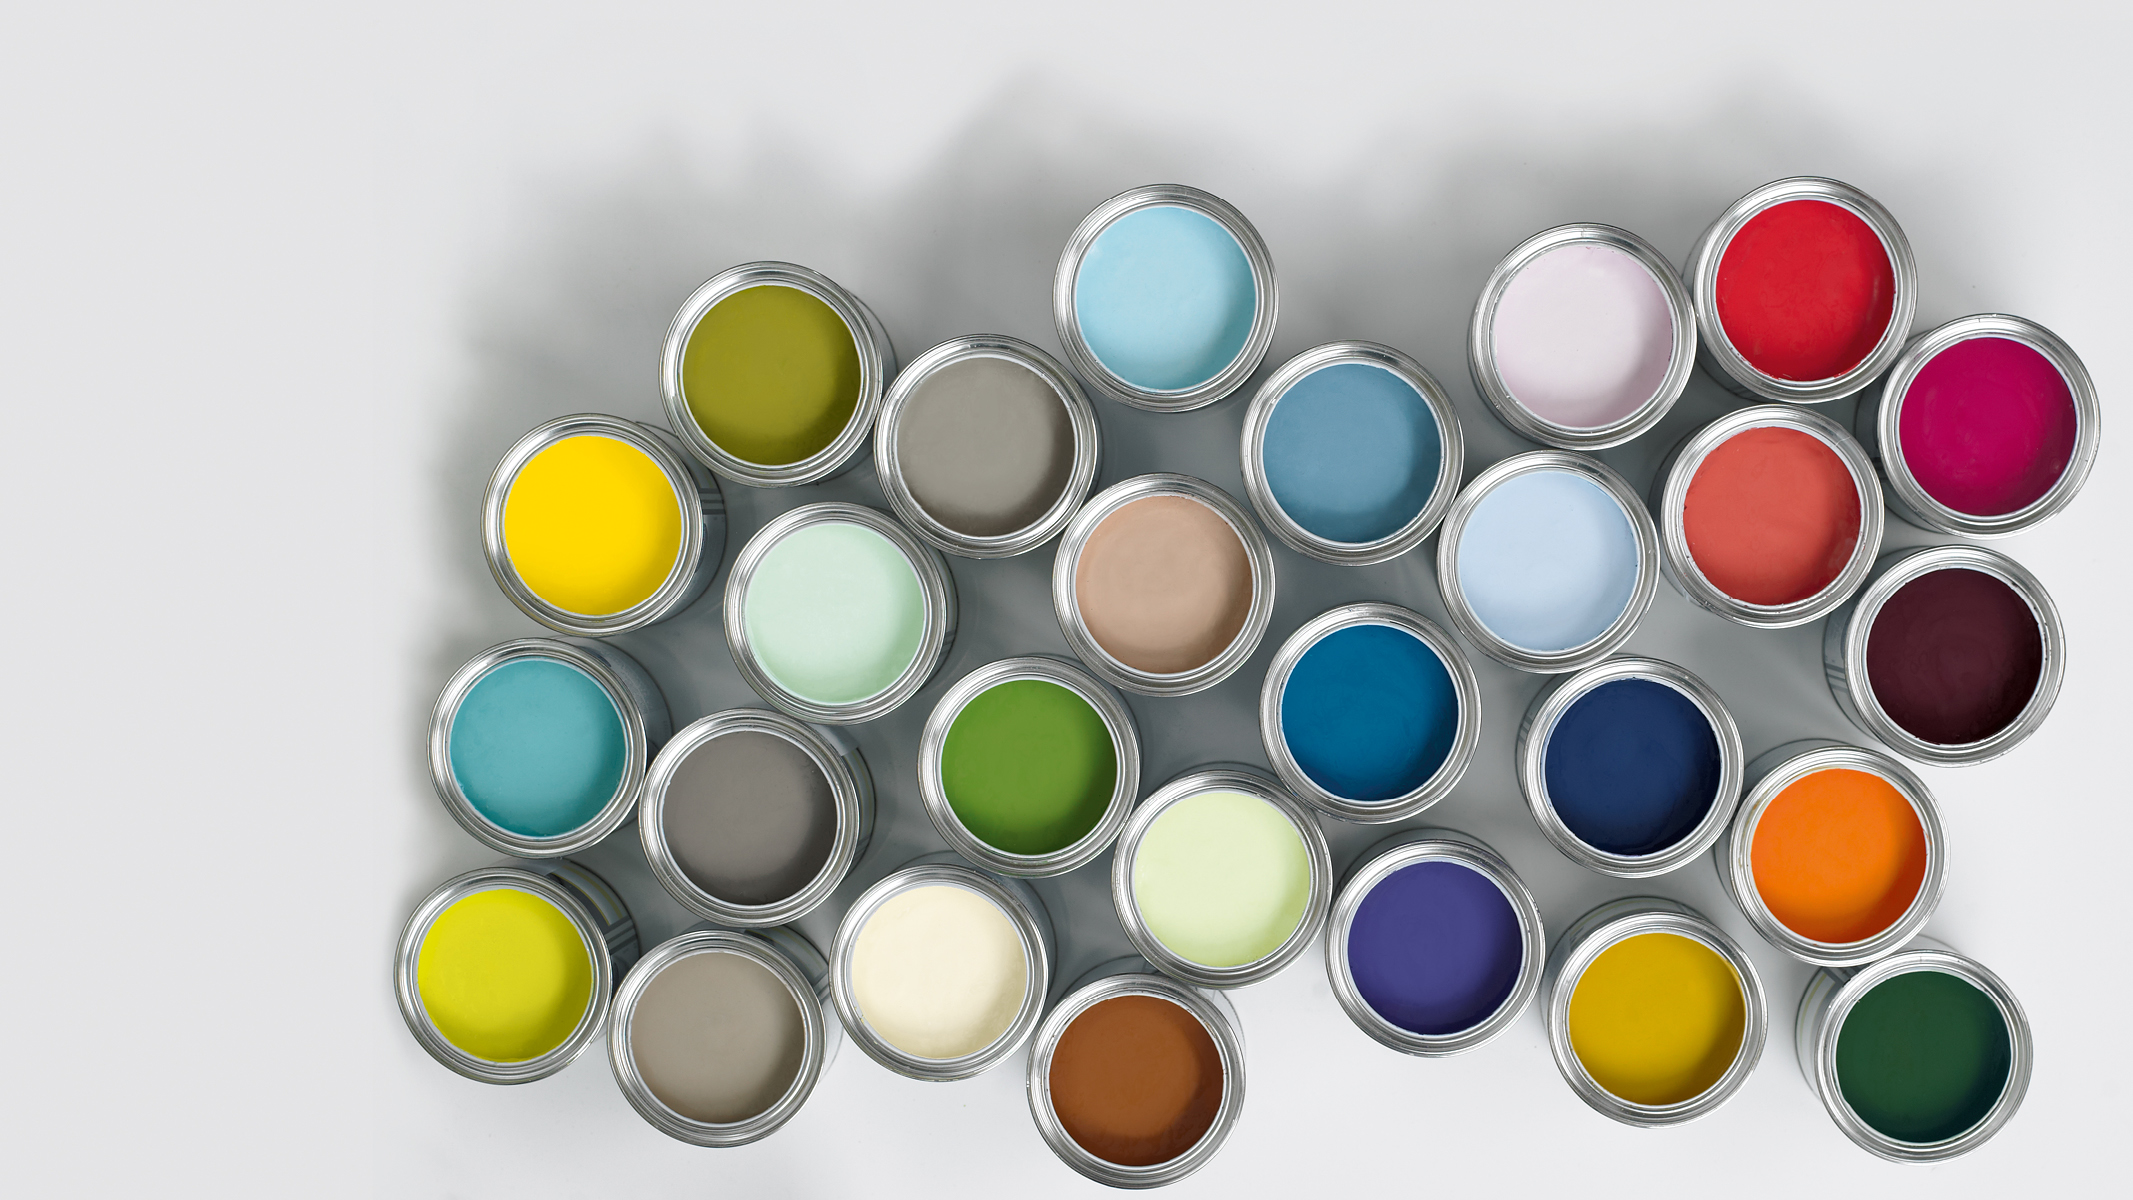 Not sure how much paint to order? Use the Dulux paint calculator to work out the exact amount you need to give your walls the maximum cover with minimum wastage.